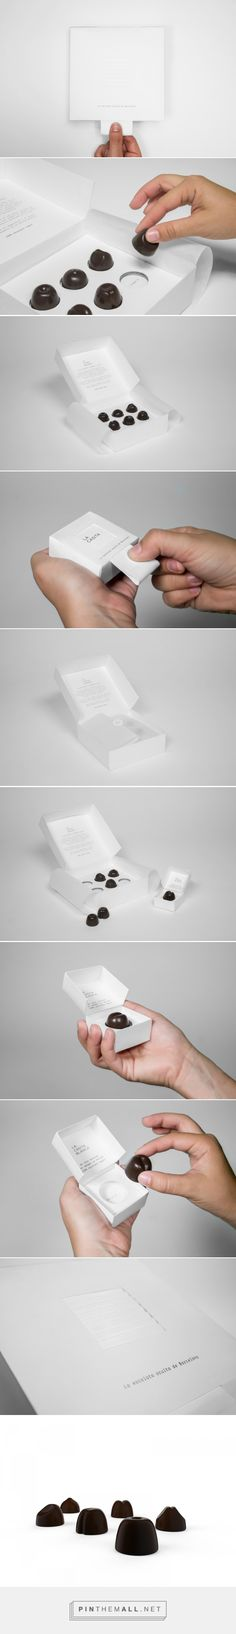 La Casita Blanca (Student Project) - Packaging of the World - Creative Package Design Gallery - http://www.packagingoftheworld.com/2016/07/la-casita-blanca-student-project.html